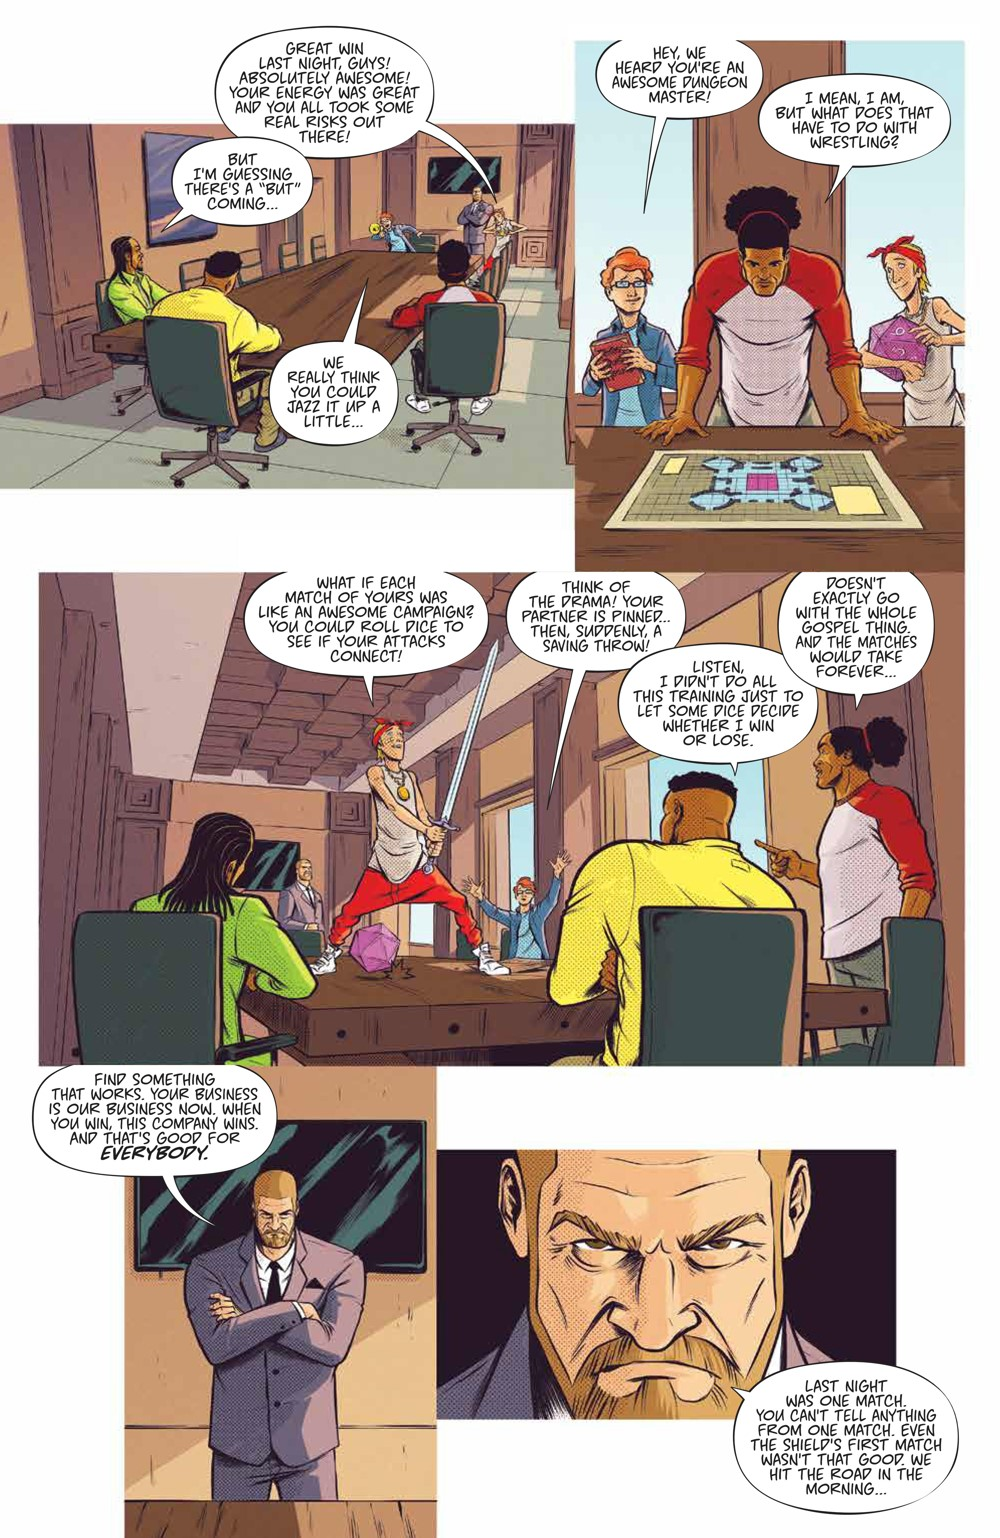 WWE_NewDay_002_PRESS_7 ComicList Previews: WWE THE NEW DAY POWER OF POSITIVITY #2 (OF 2)